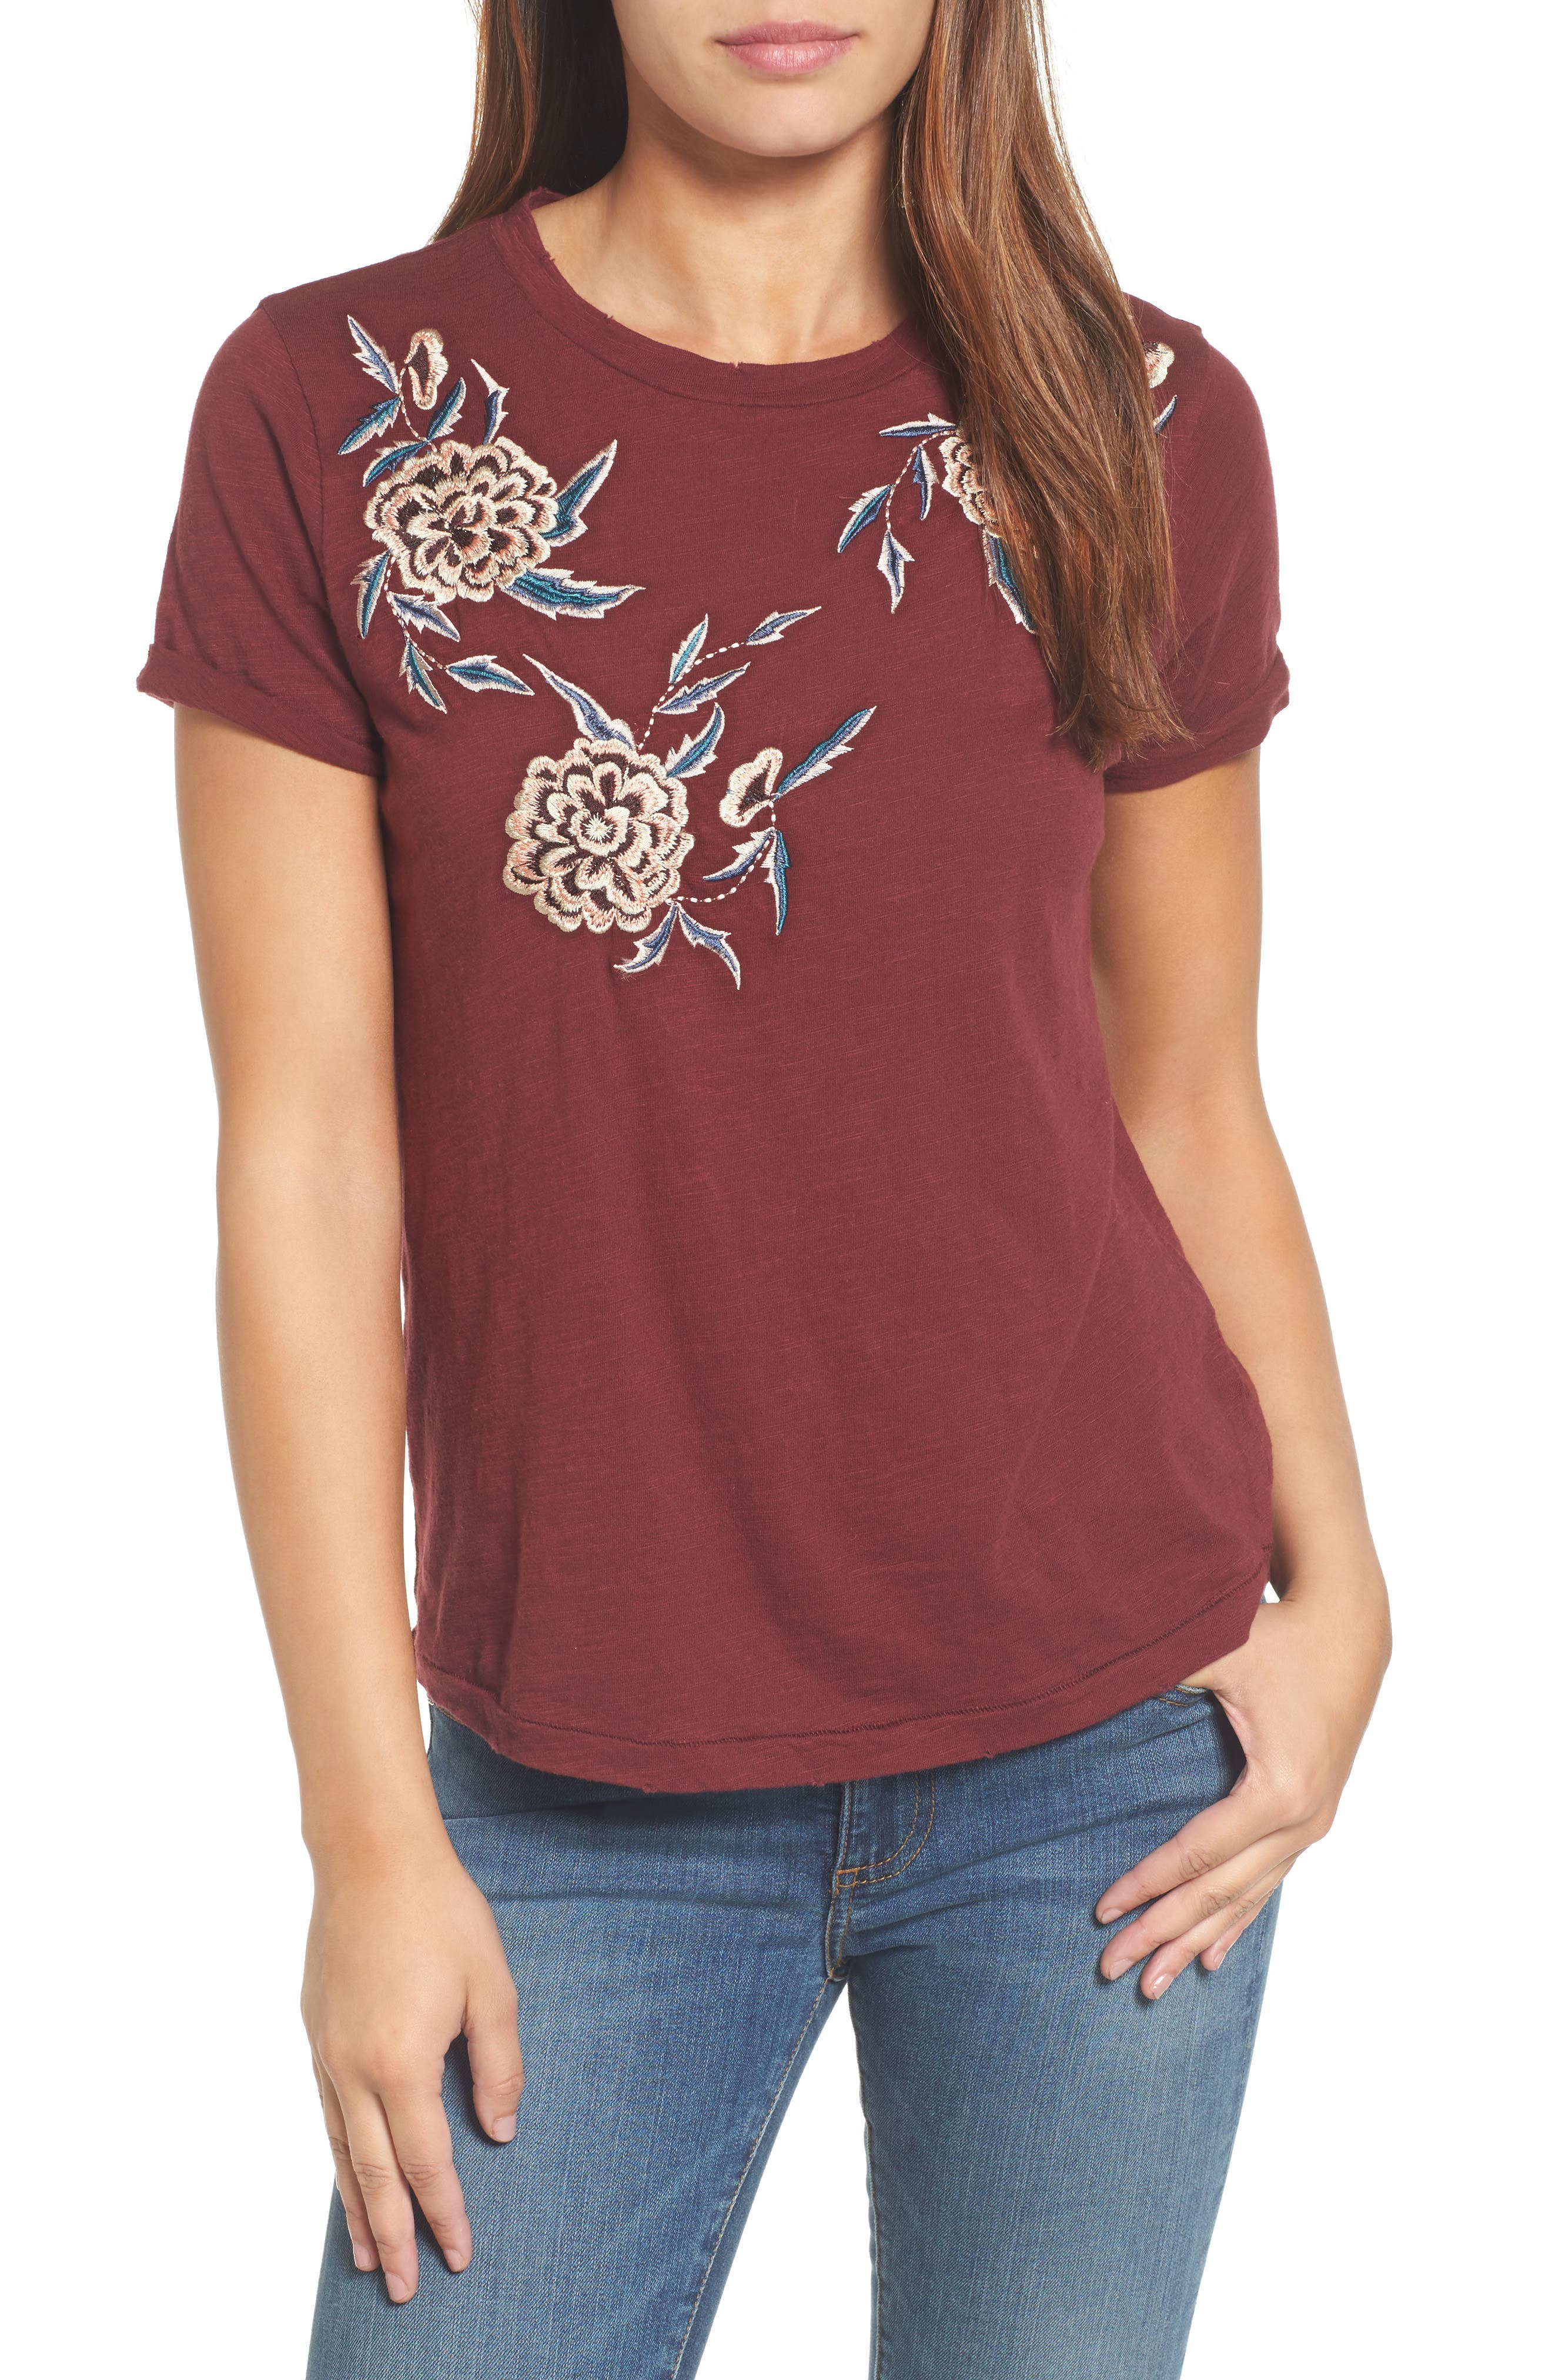 Alternate Image 1 Selected - Lucky Brand Floral Embroidered Tee